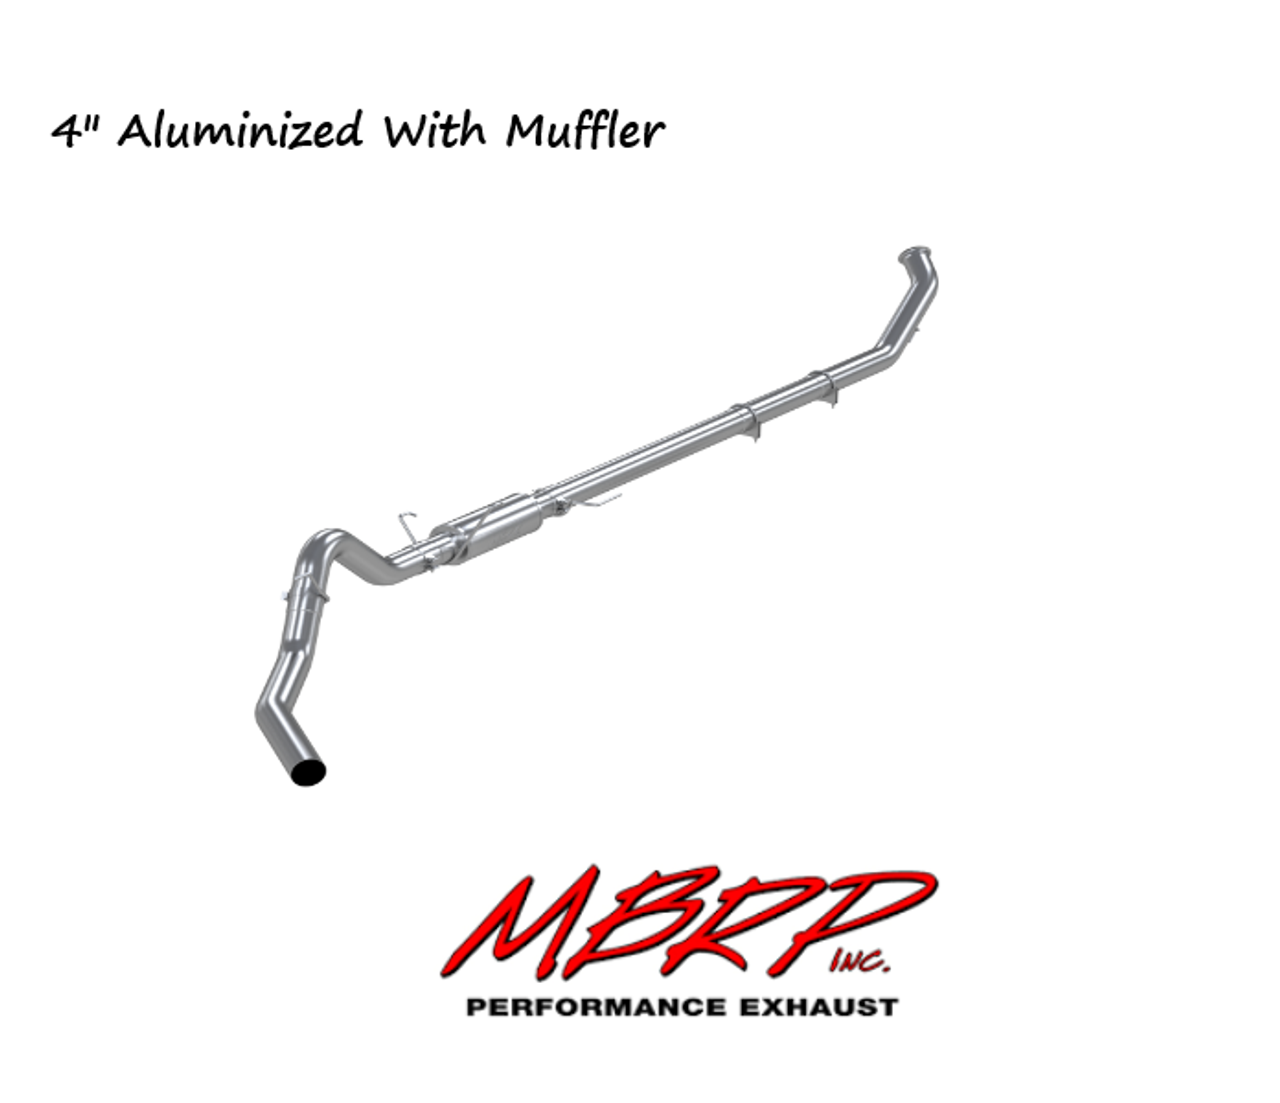 "2007-2009 Dodge Ram2500/3500 6.7L MBRP (P1 Race Parts) 4"" Turbo Back  Aluminized Race Exhaust With Muffler (Includes Free Tip) C6126P"